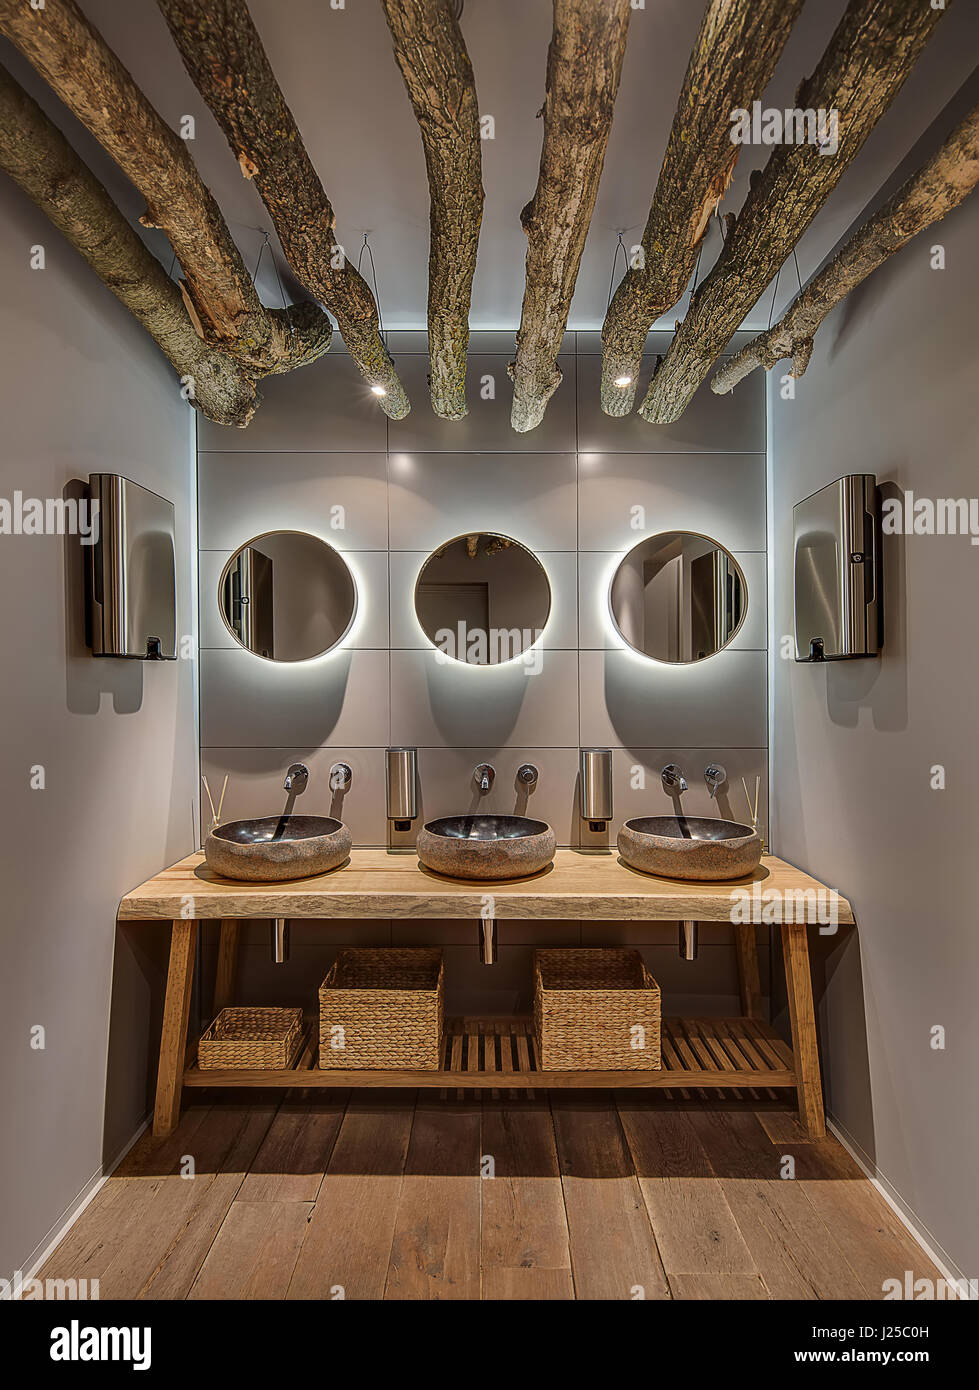 Restaurant Restroom High Resolution Stock Photography And Images Alamy